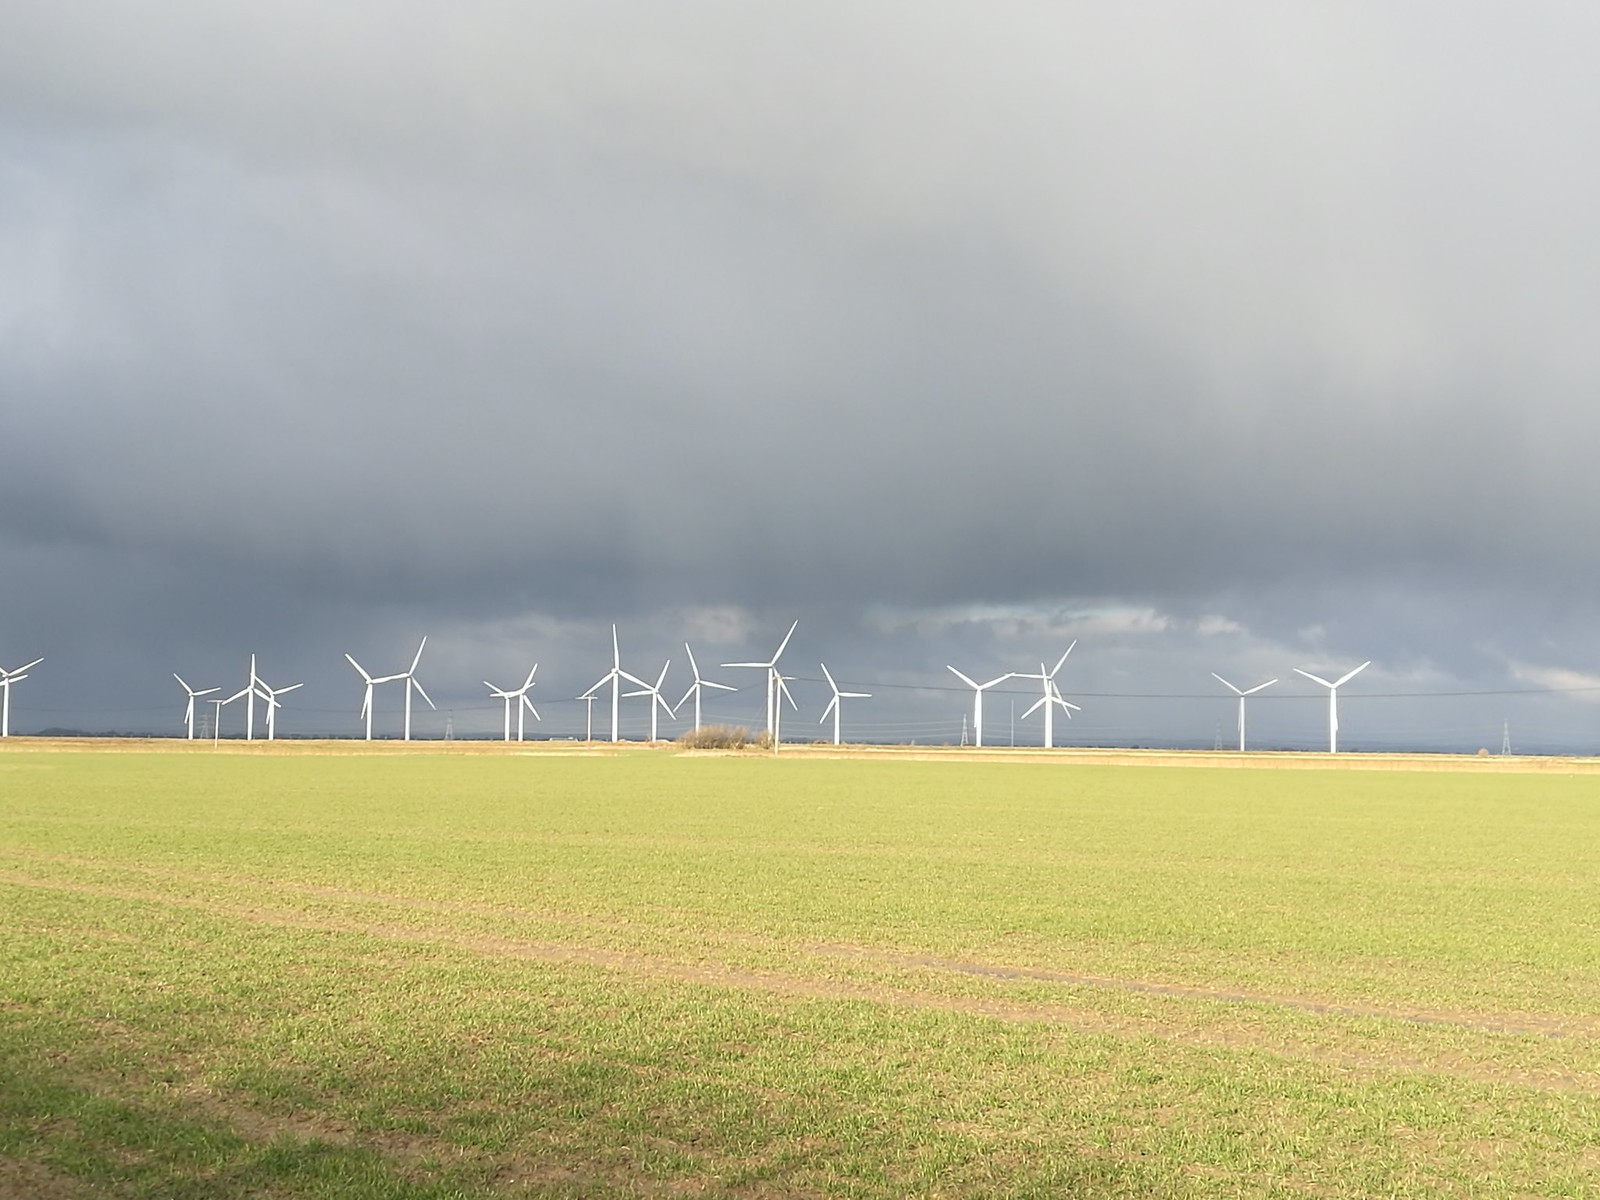 Dark Clouds and Wind Farm SWC 154 - Rye to Dungeness and Lydd-on-Sea or Lydd or Circular (Wind Farm Extension of Rye Ending) [taken by Emma P]